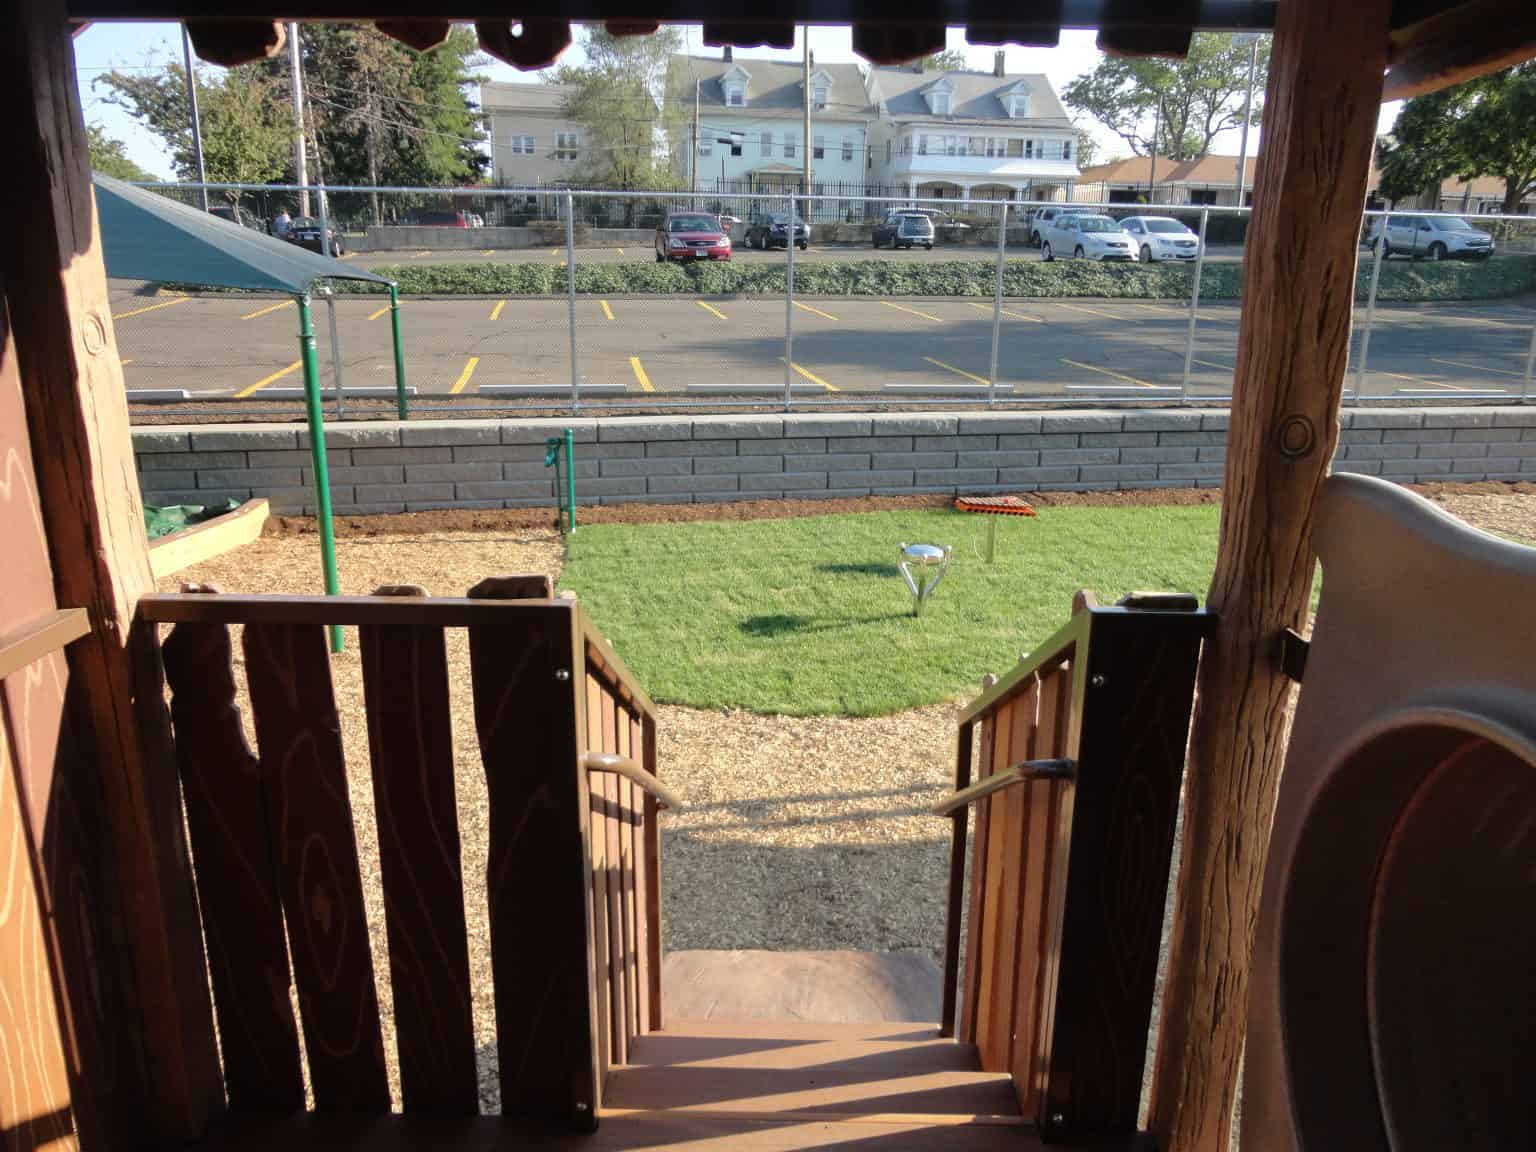 phyllis-bodel-daycare-playground-new-haven-ct_18127559575_o-1536x1152